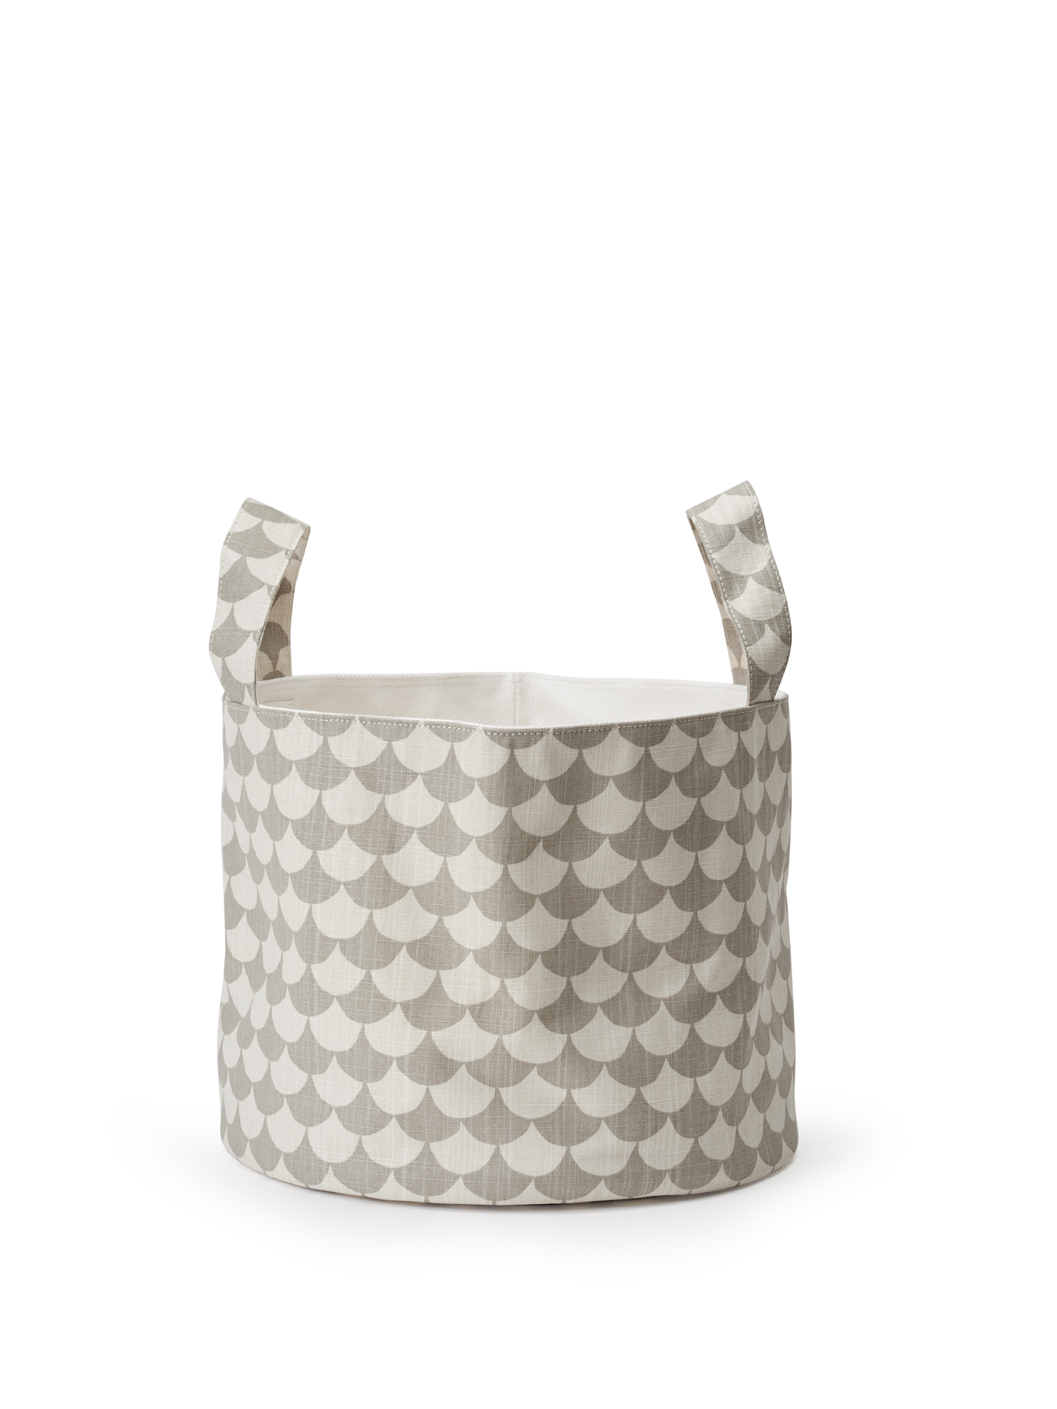 Soft Basket - Medium